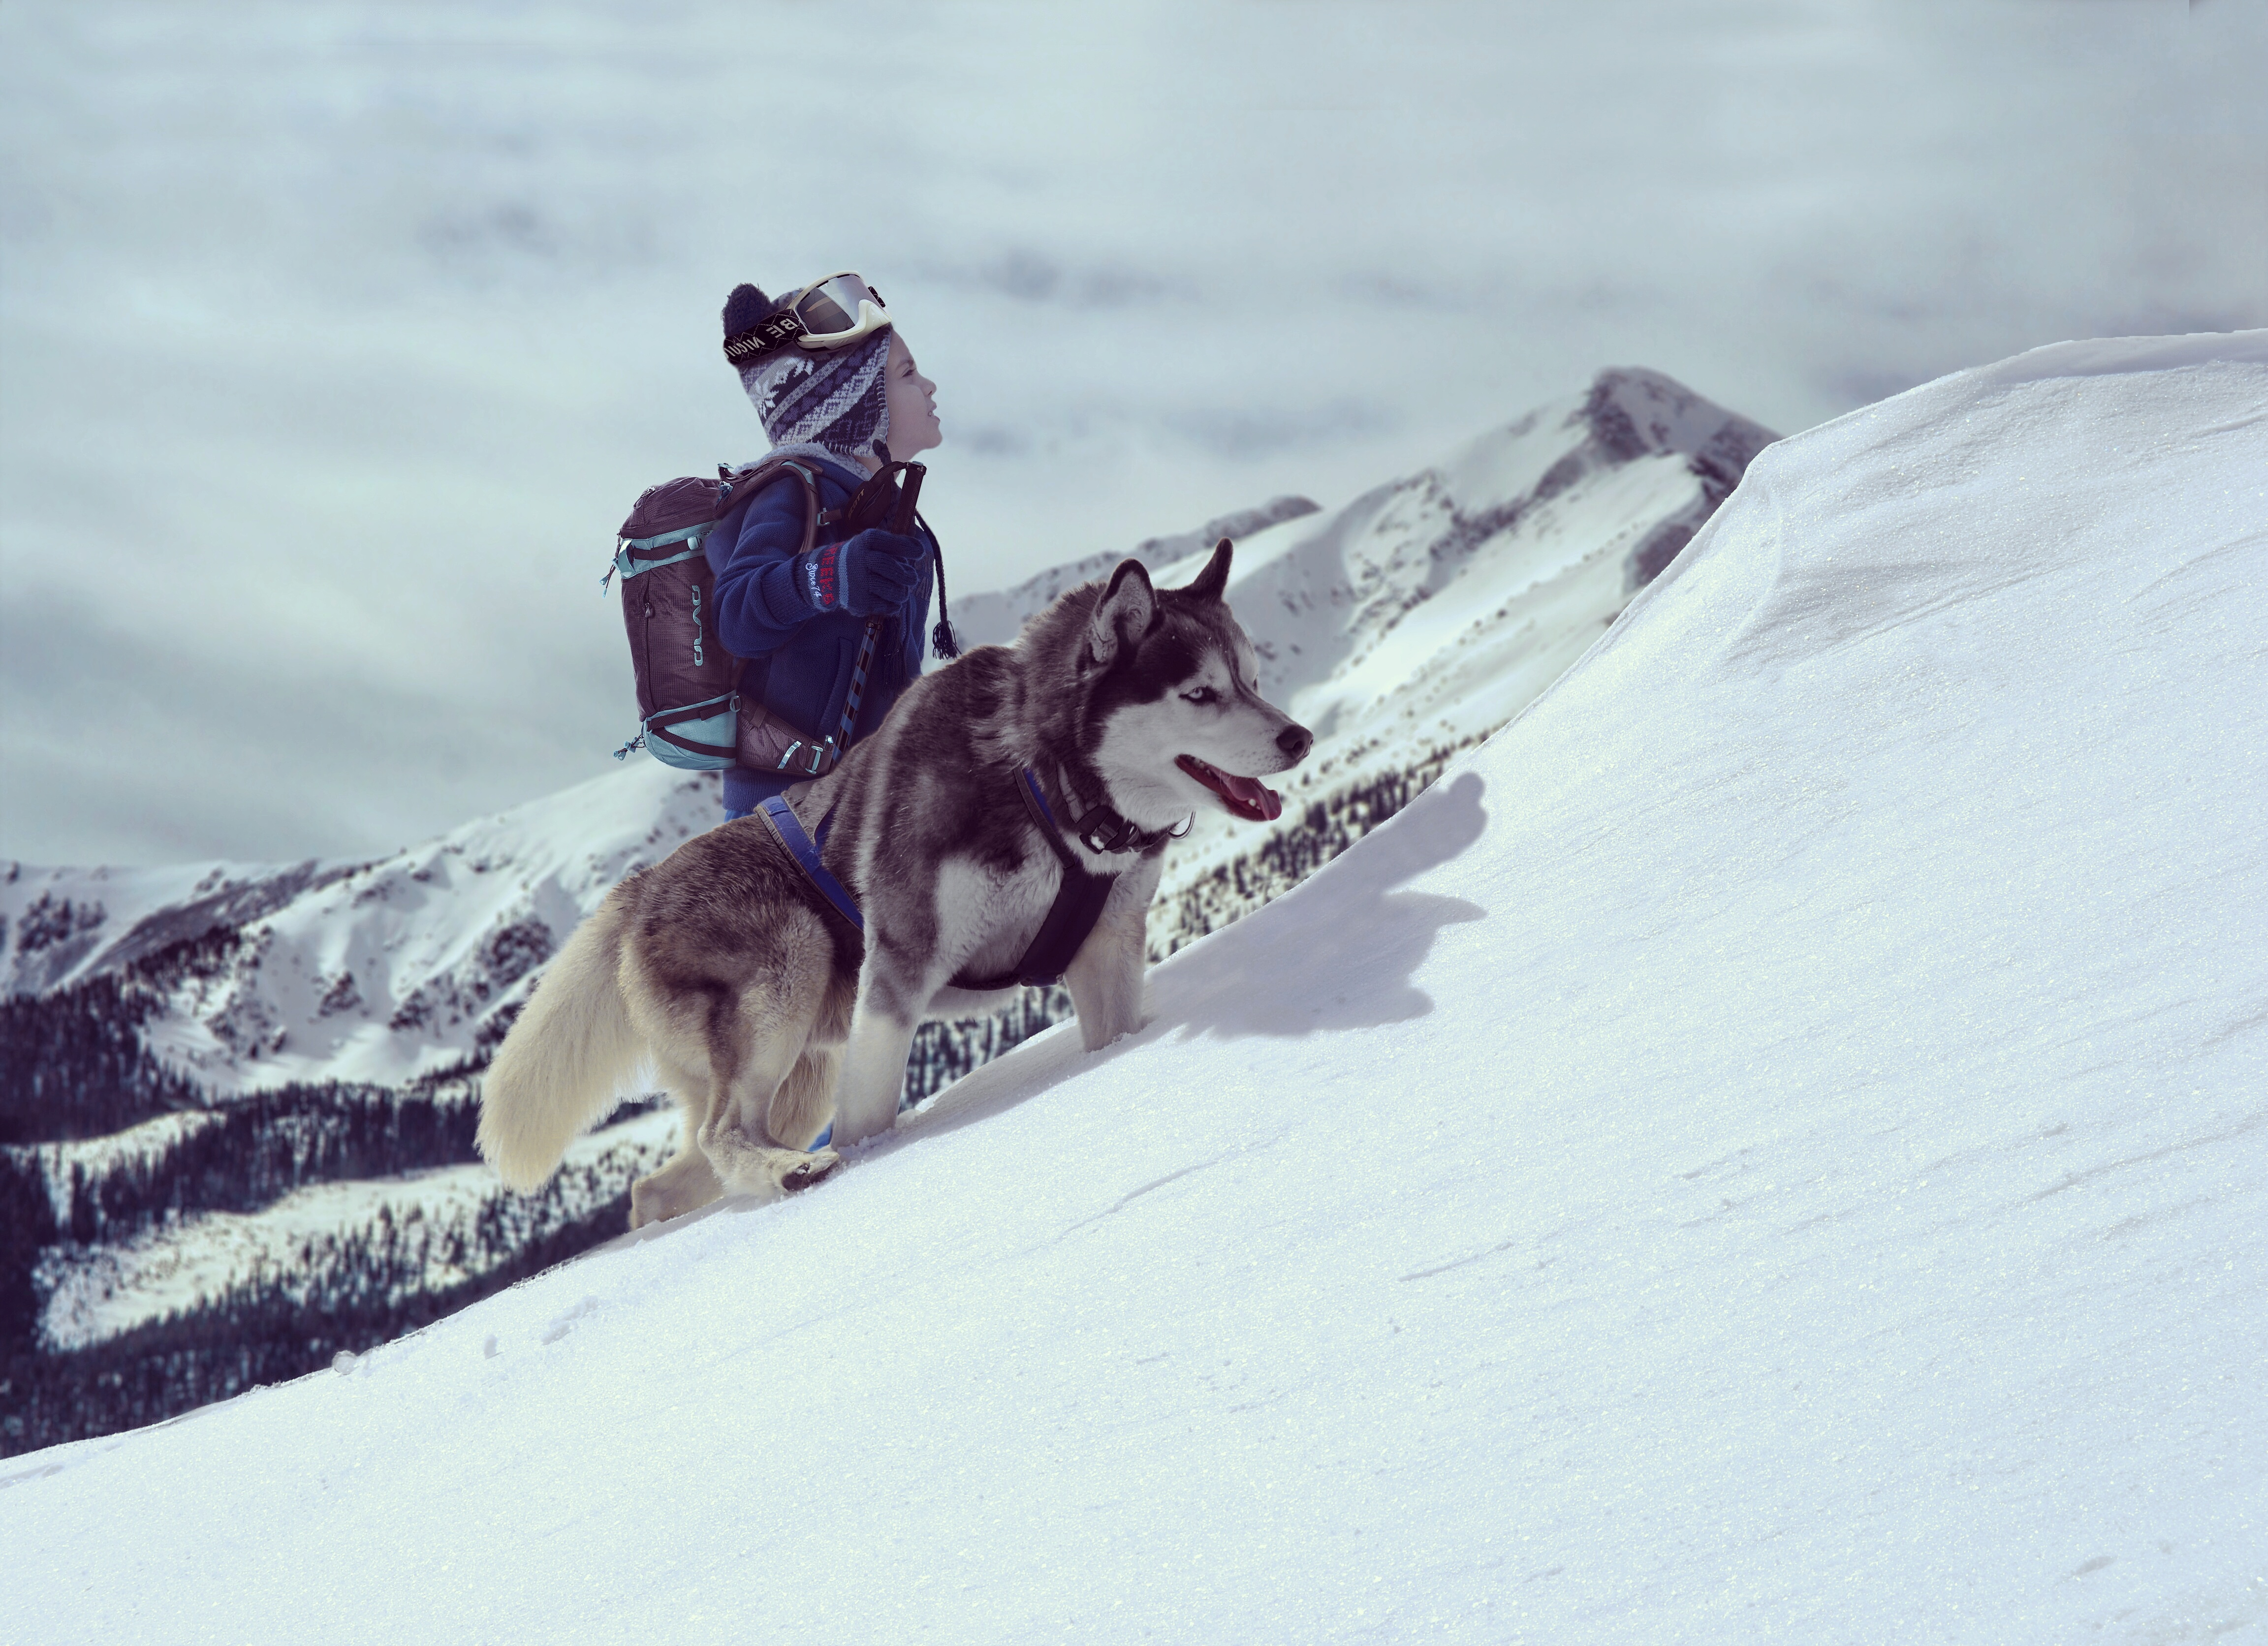 Bro and his Husky exploring snowy mountains by beseektas